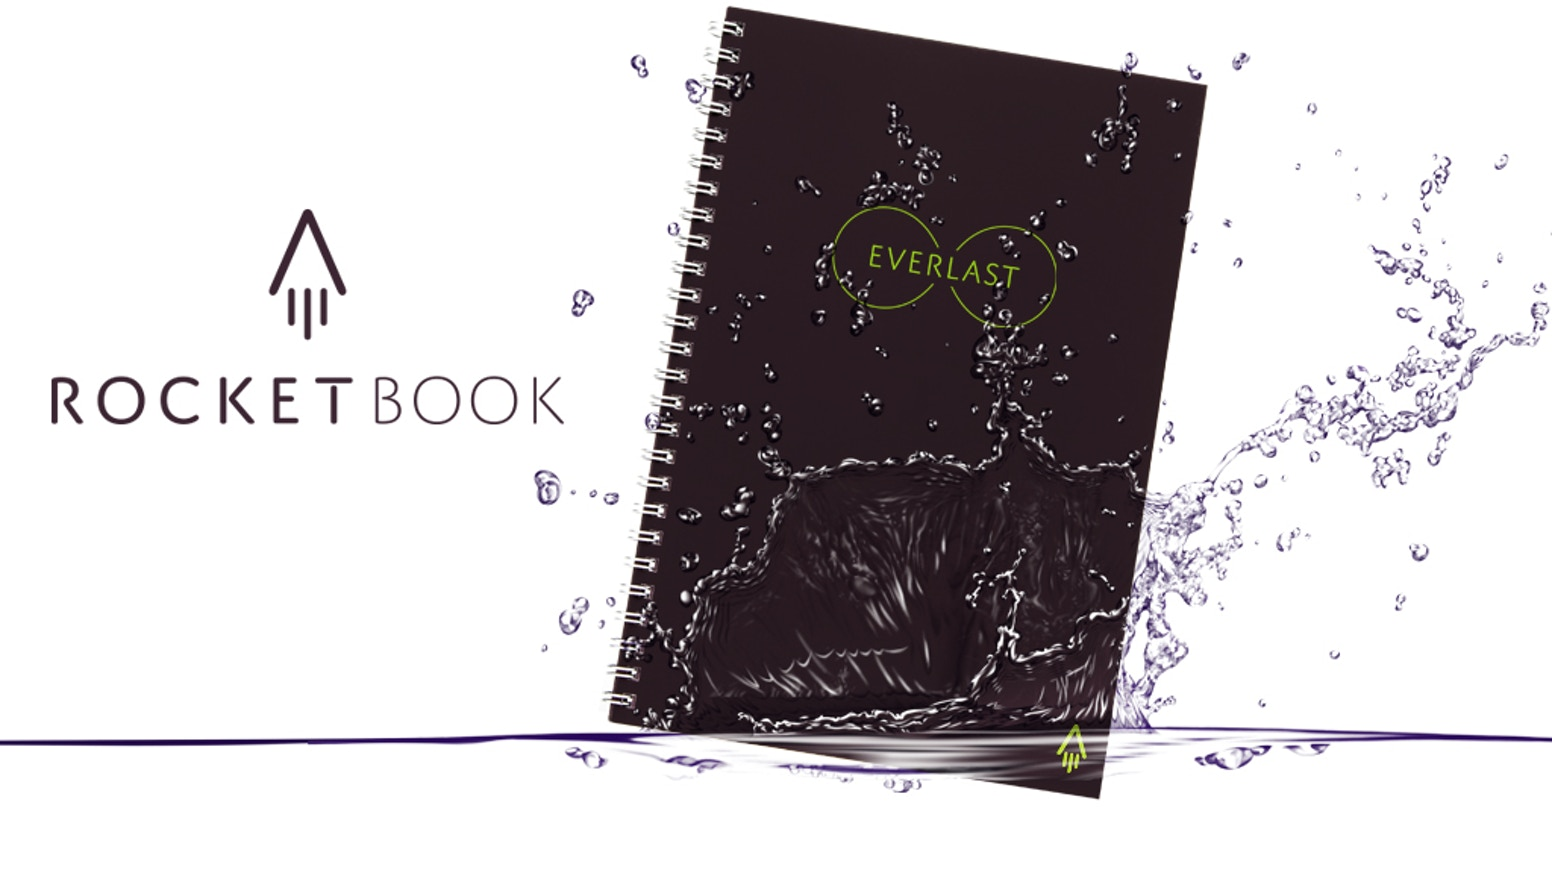 A smart paper-and-pen notebook that's endlessly reusable? That's not magic. It's the Rocketbook Everlast.